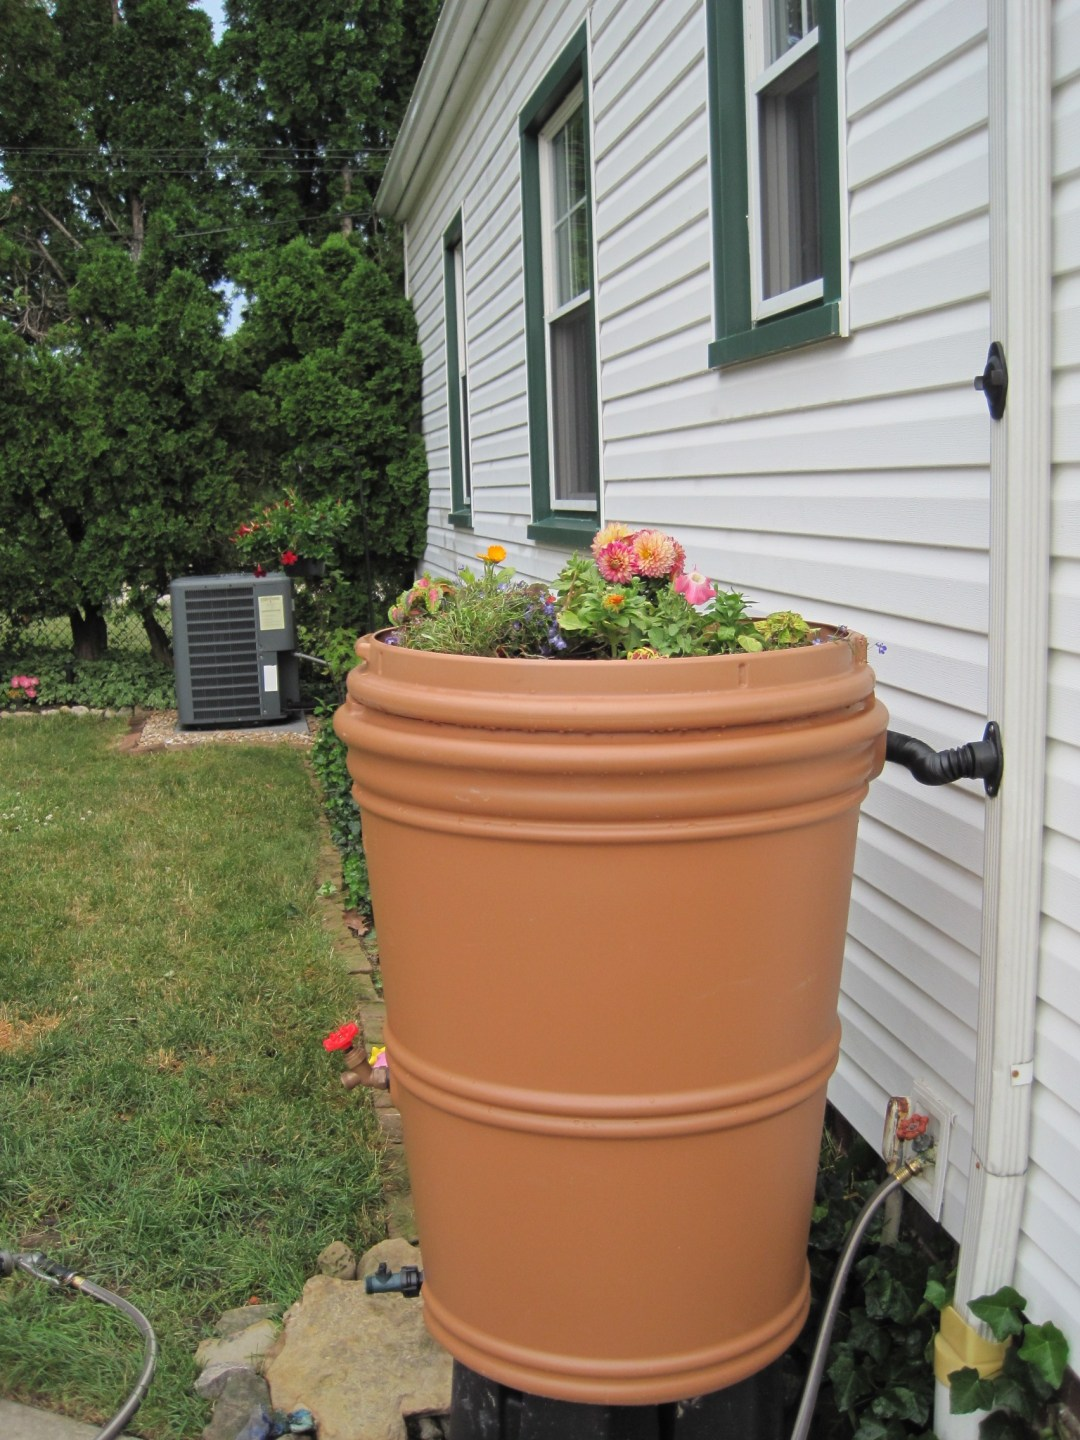 A rain barrel in Parma, Ohio helps reduce stormwater runoff.